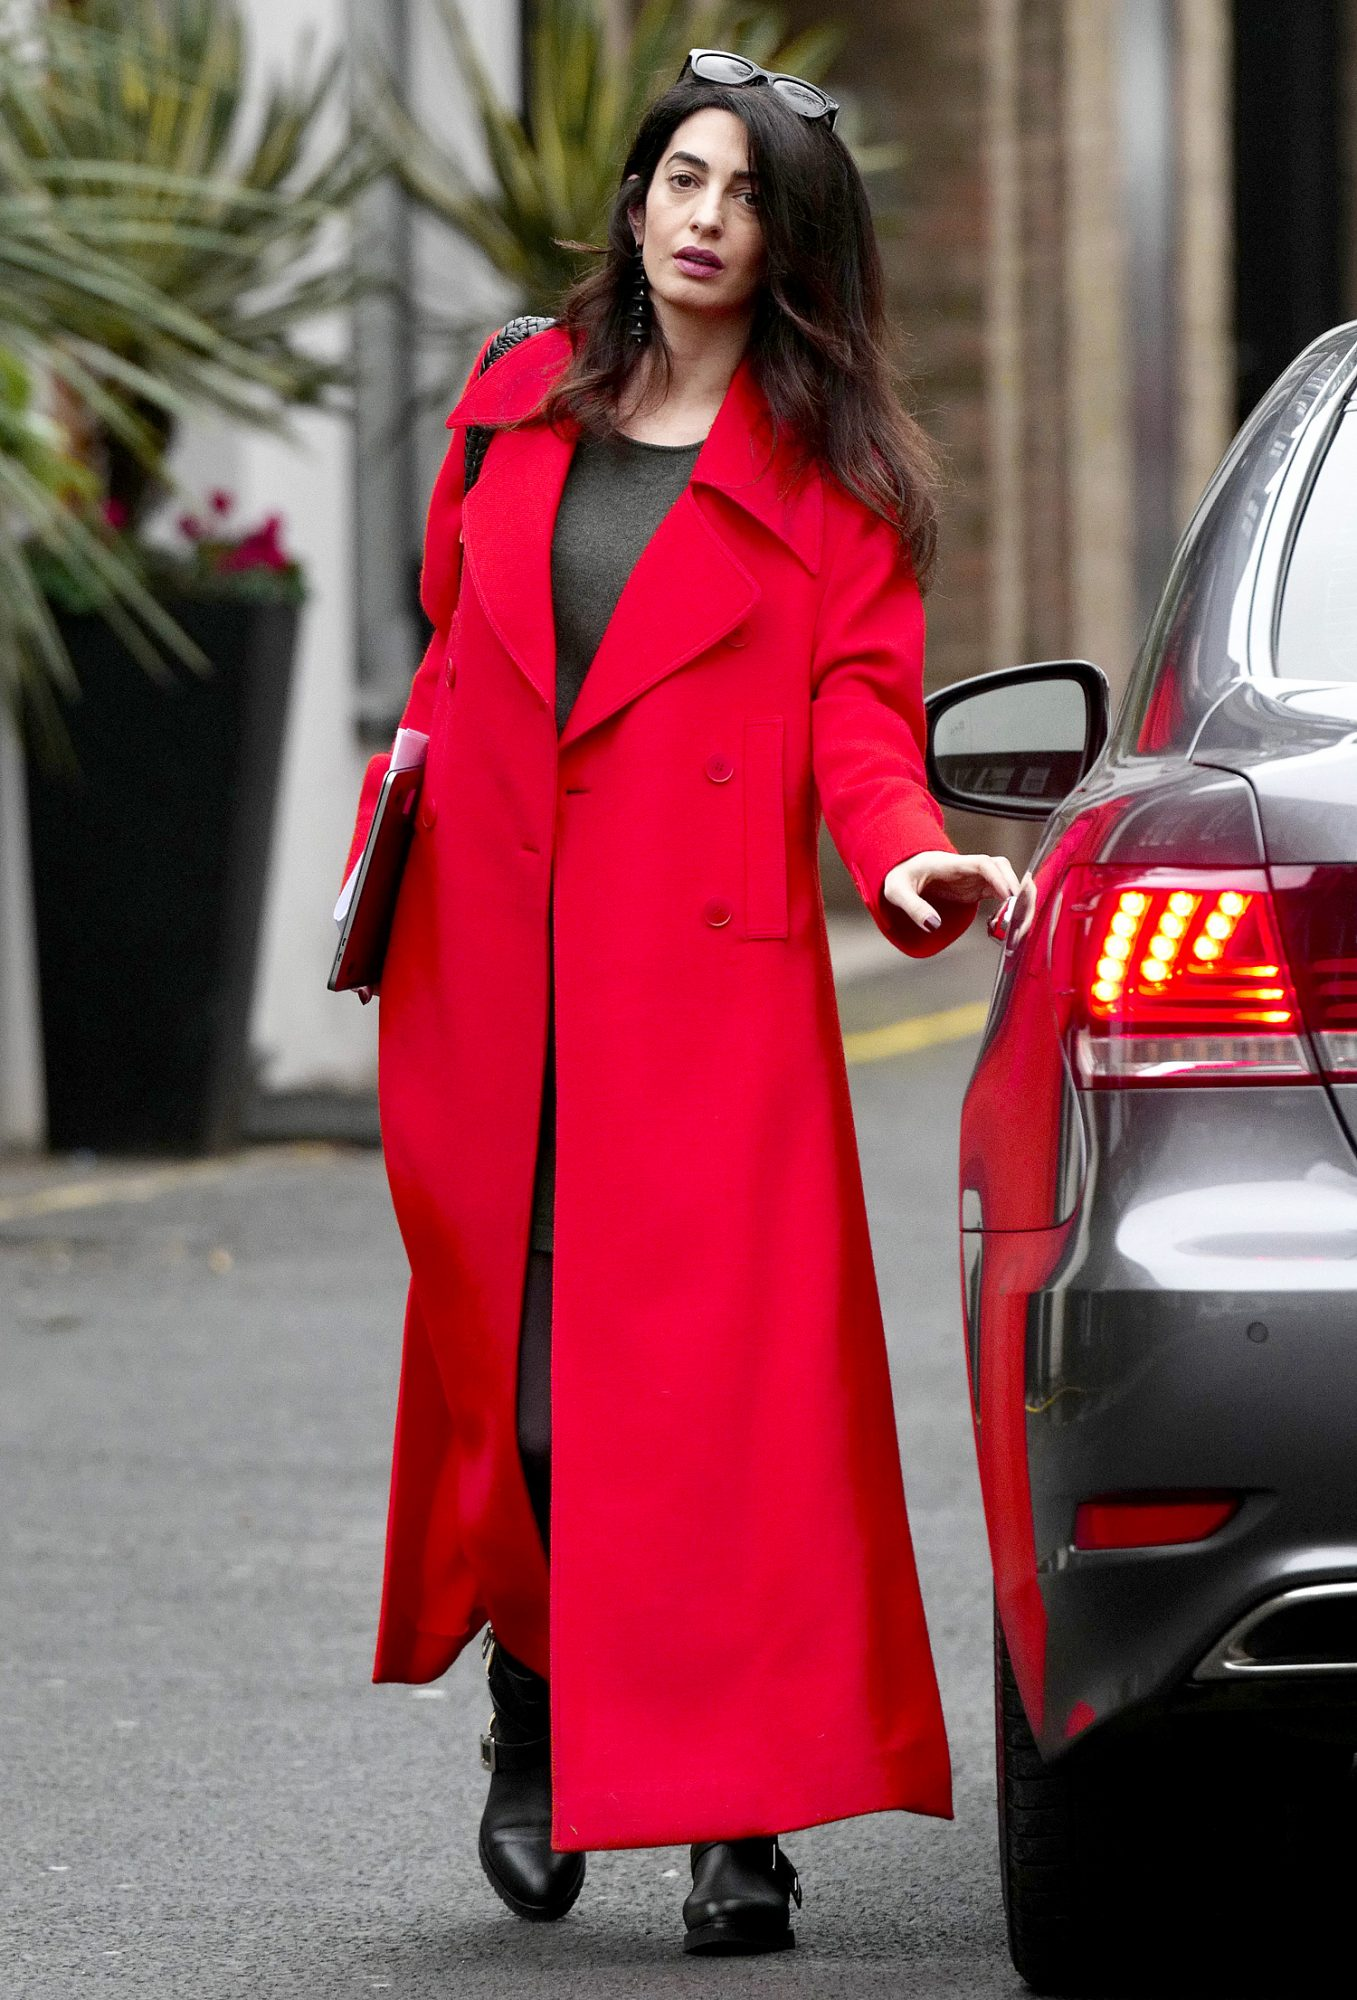 EXCLUSIVE: **PREMIUM EXCLUSIVE RATES APPLY**MUST AGREE FEES** Pregnant Amal Clooney is seen looking radiant whilst out and about in London.